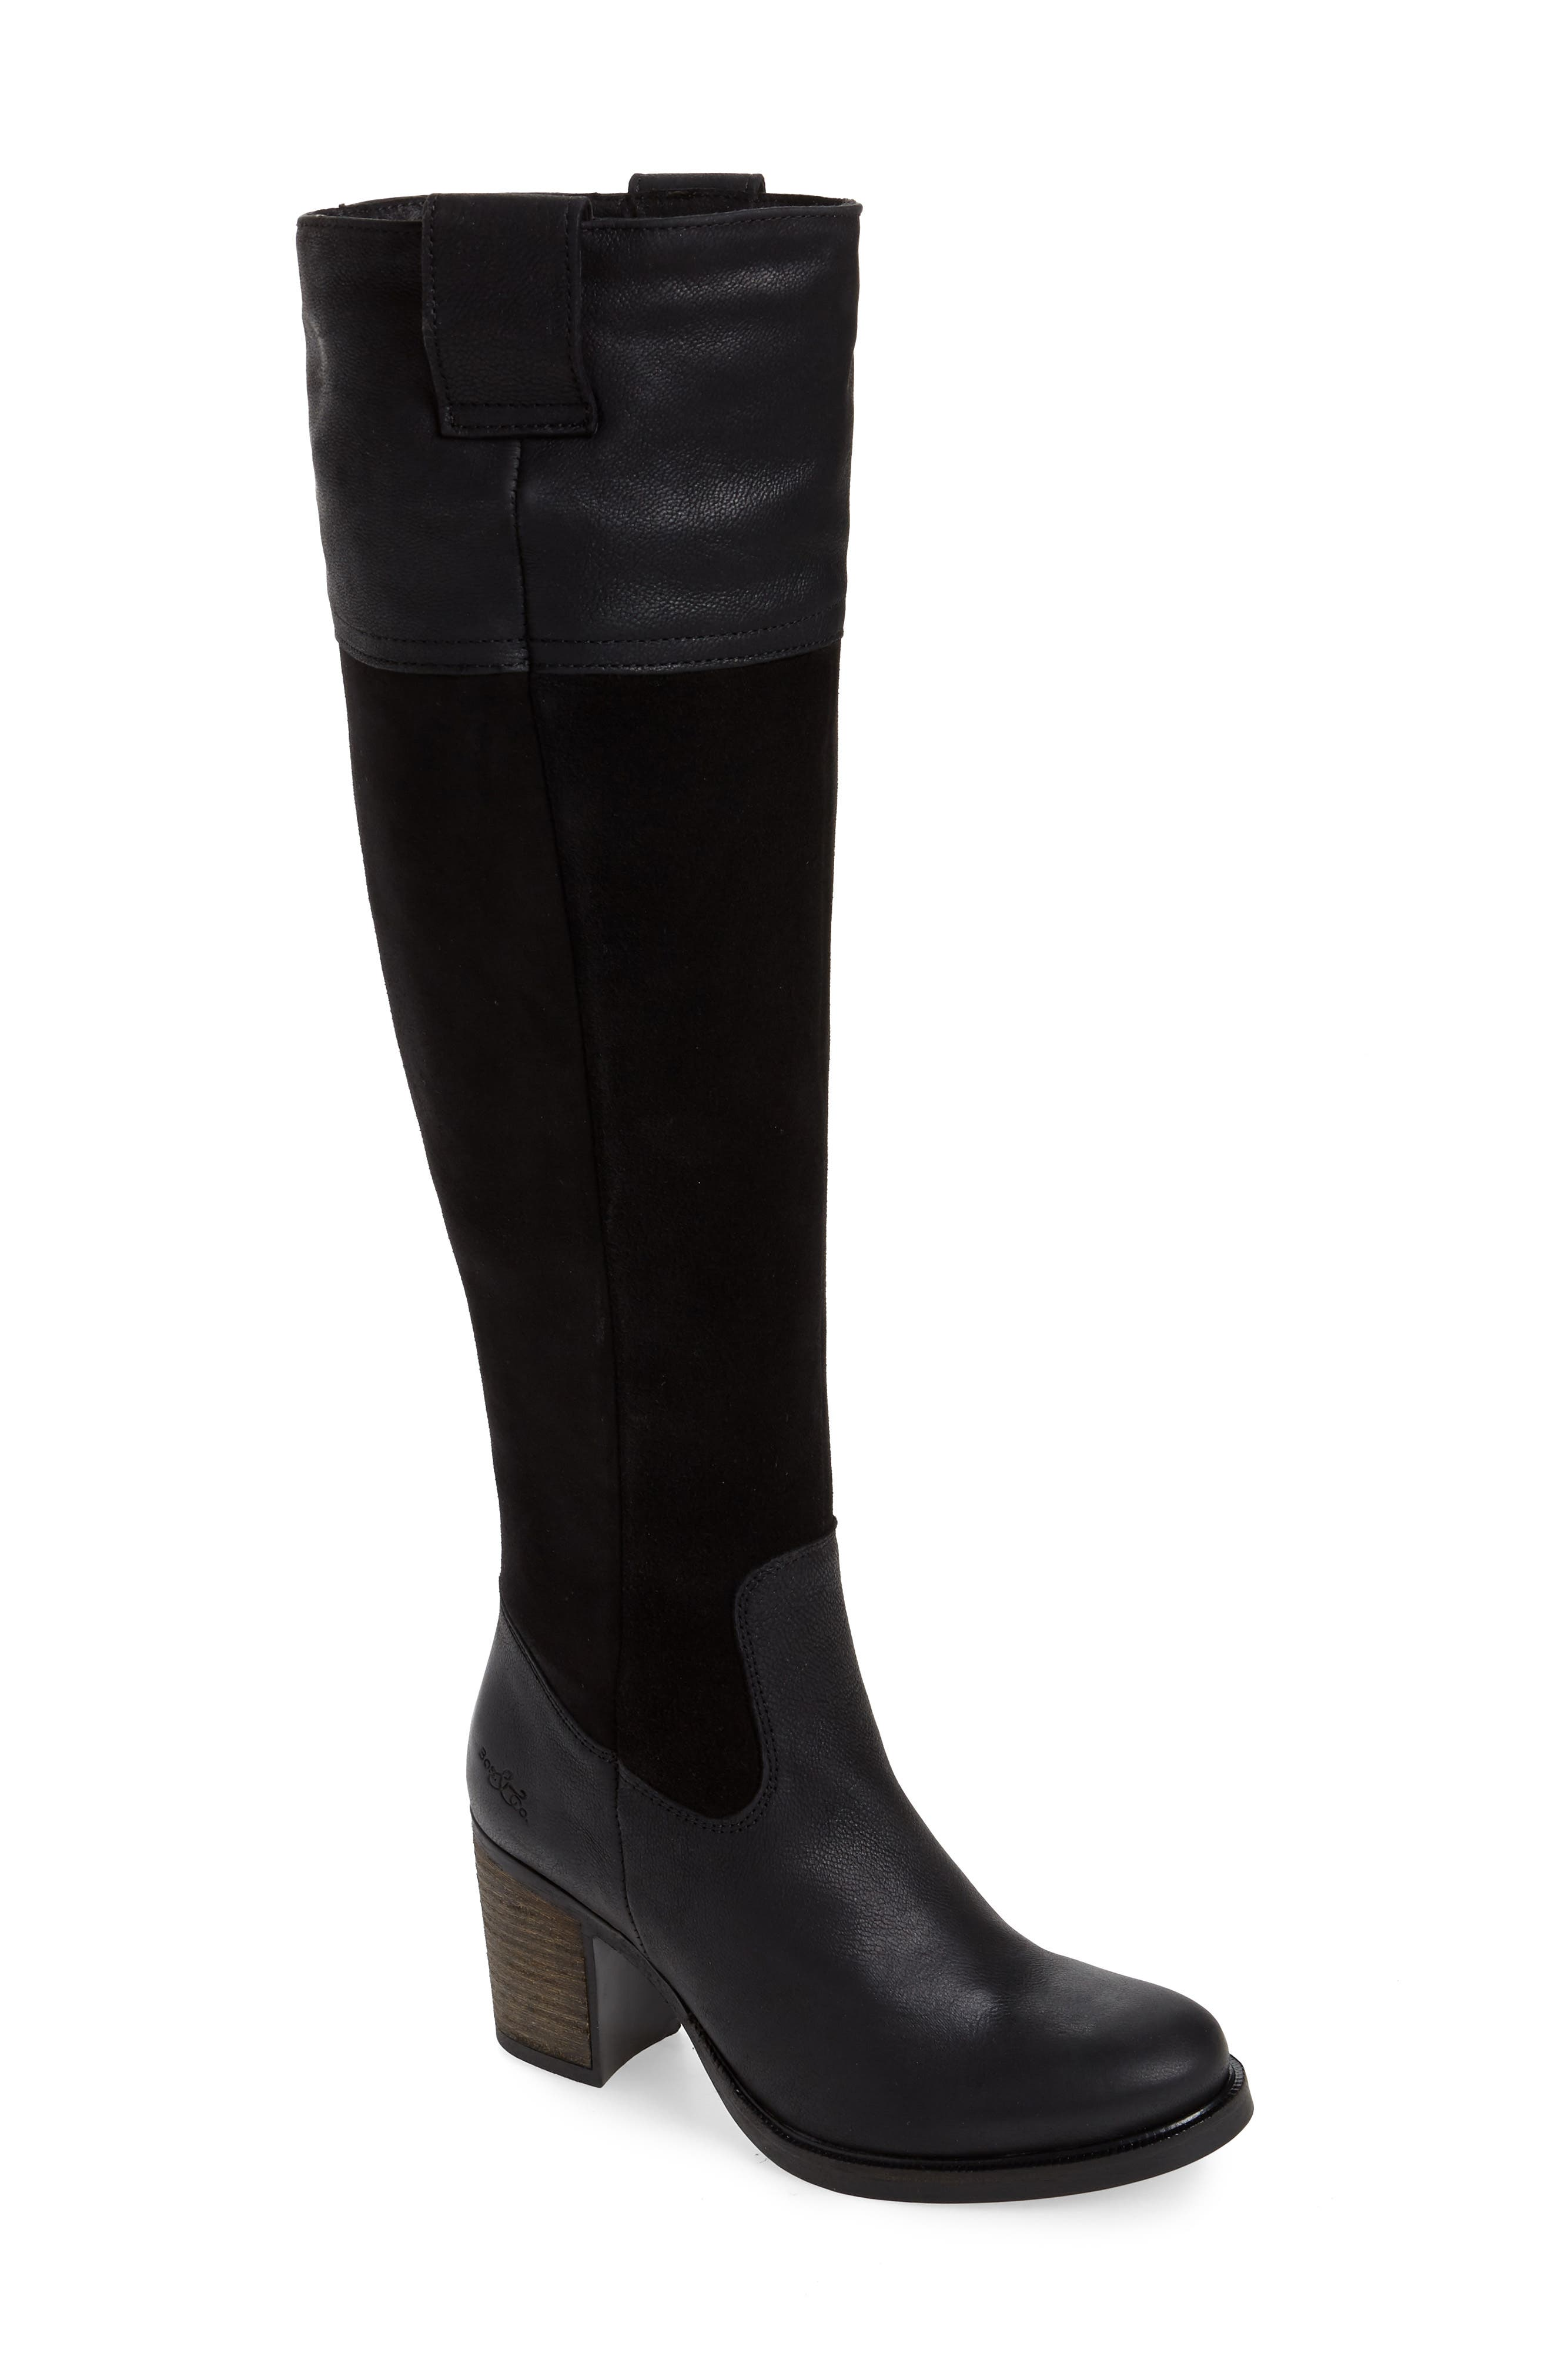 Billing Suede Over The Knee Boot